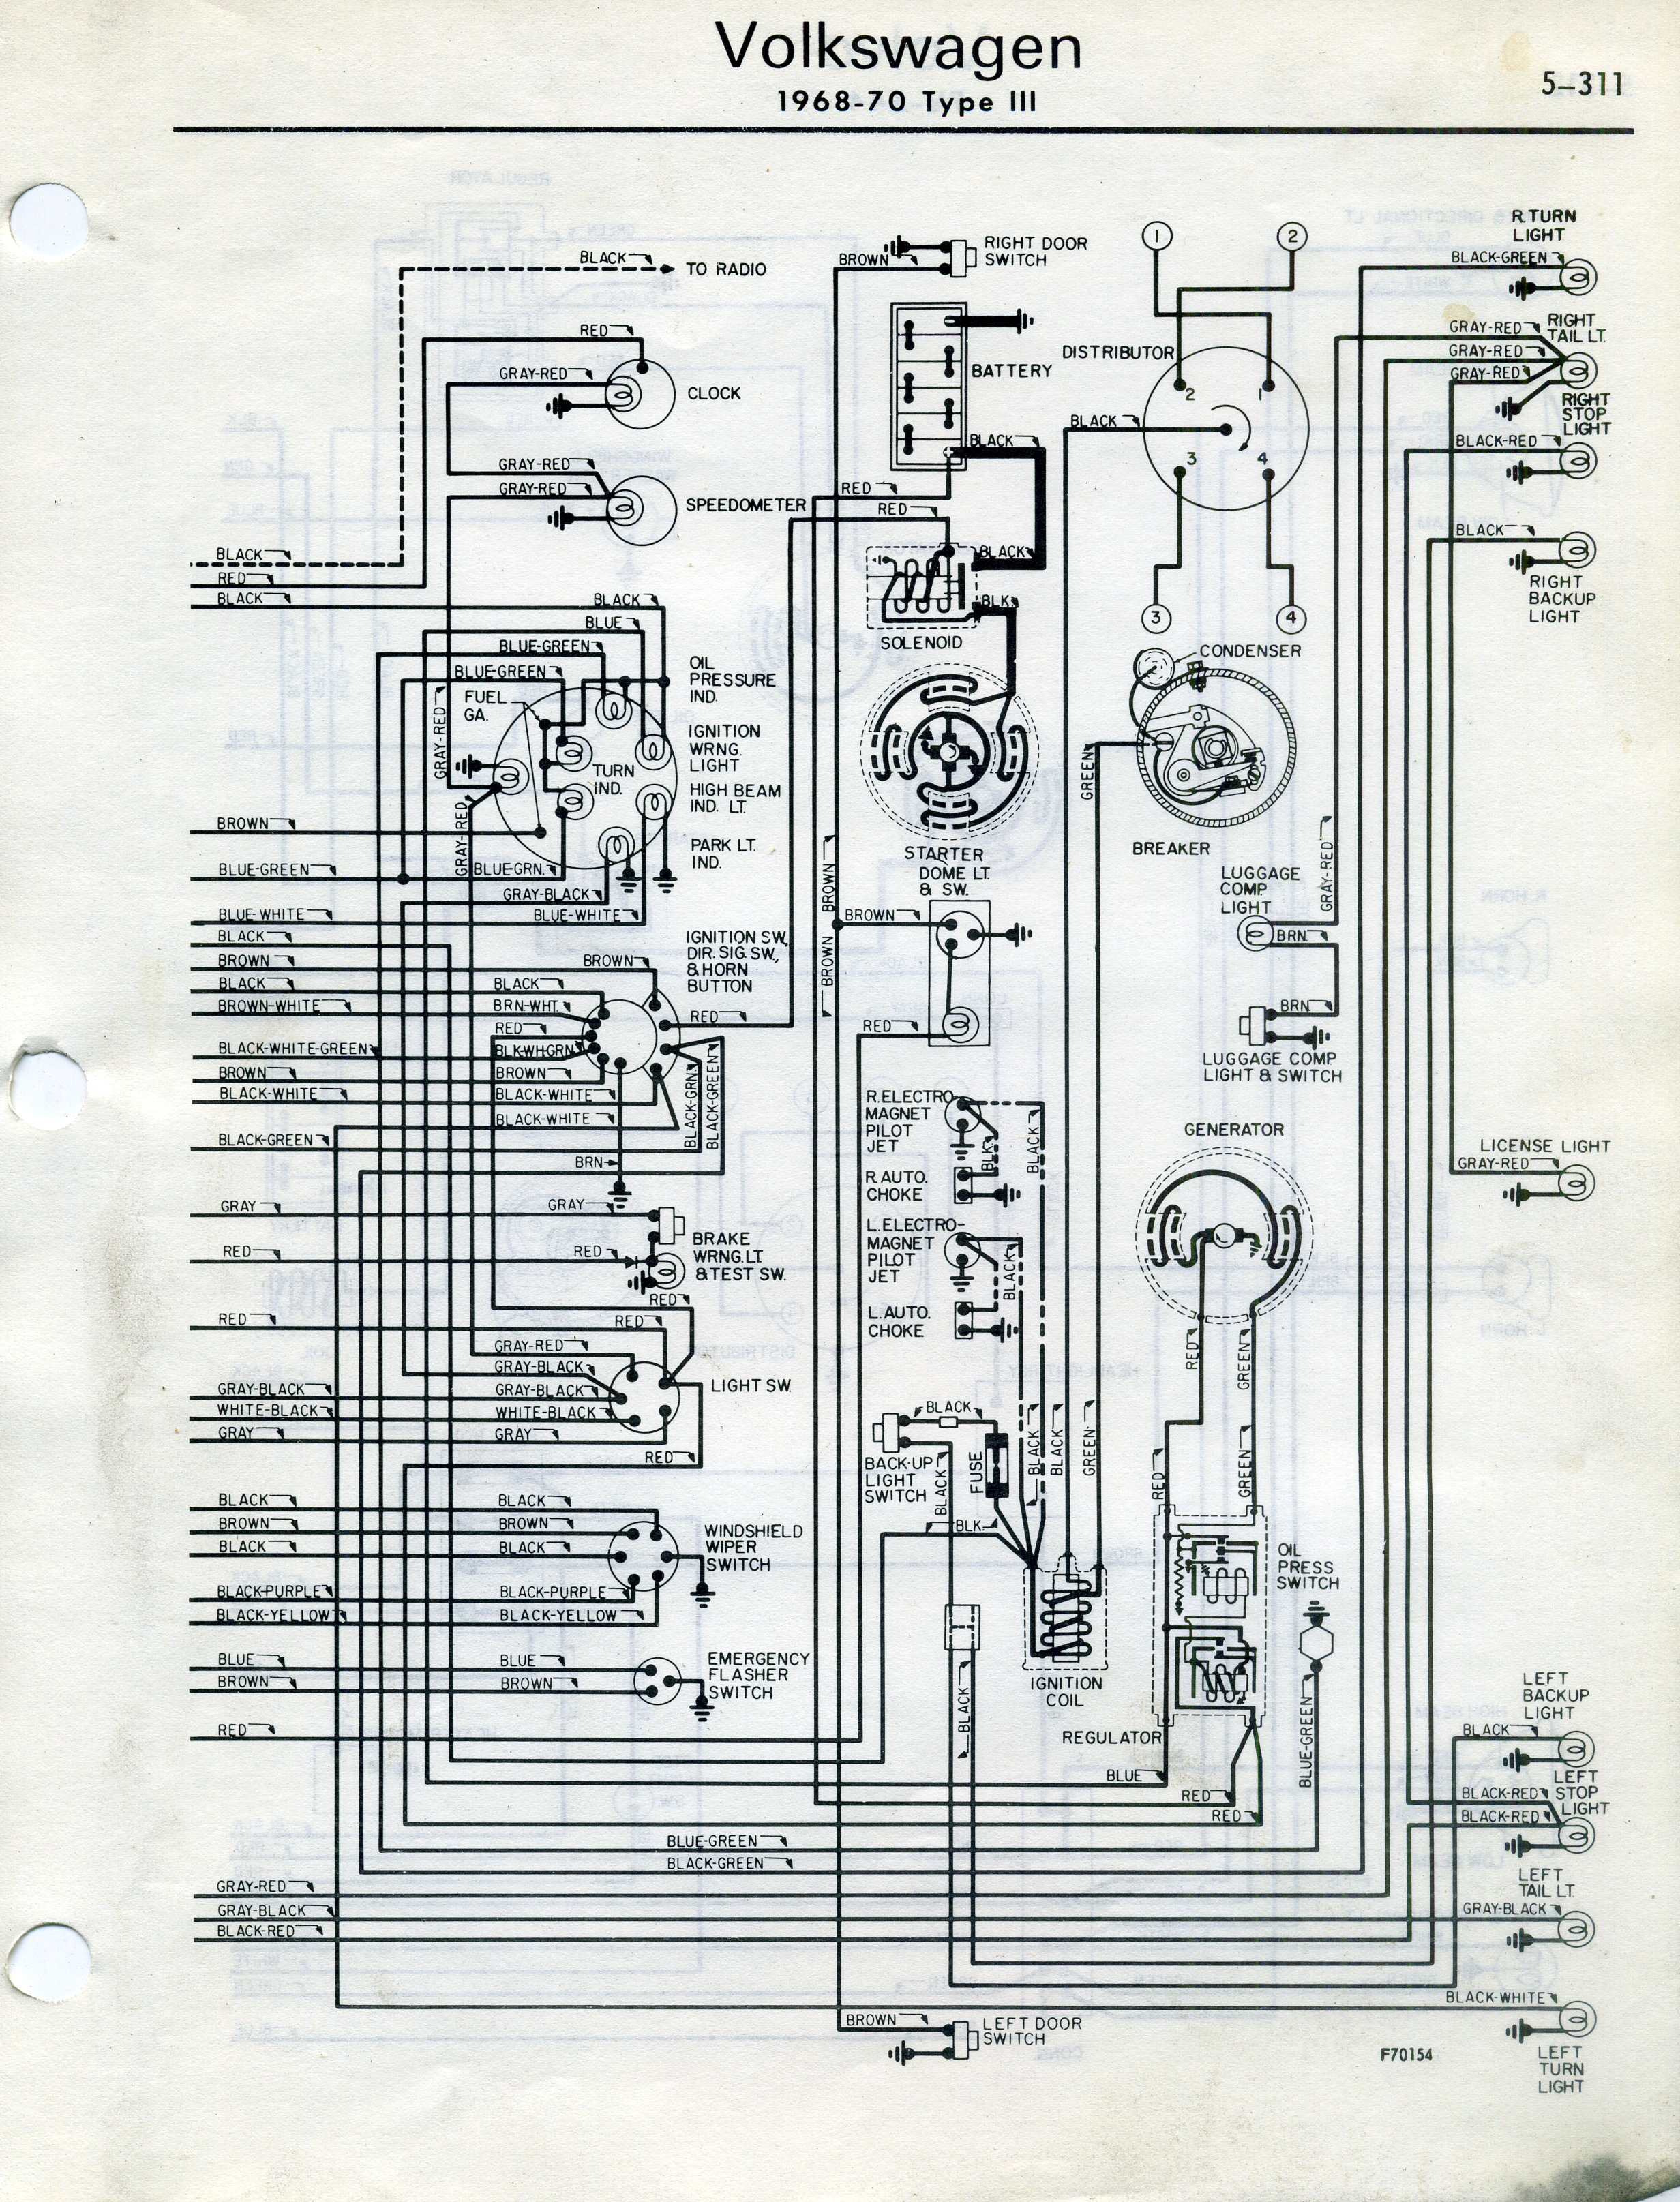 Type 3 Wiring Diagrams Mitchell 1968 70 From National Automotive Service